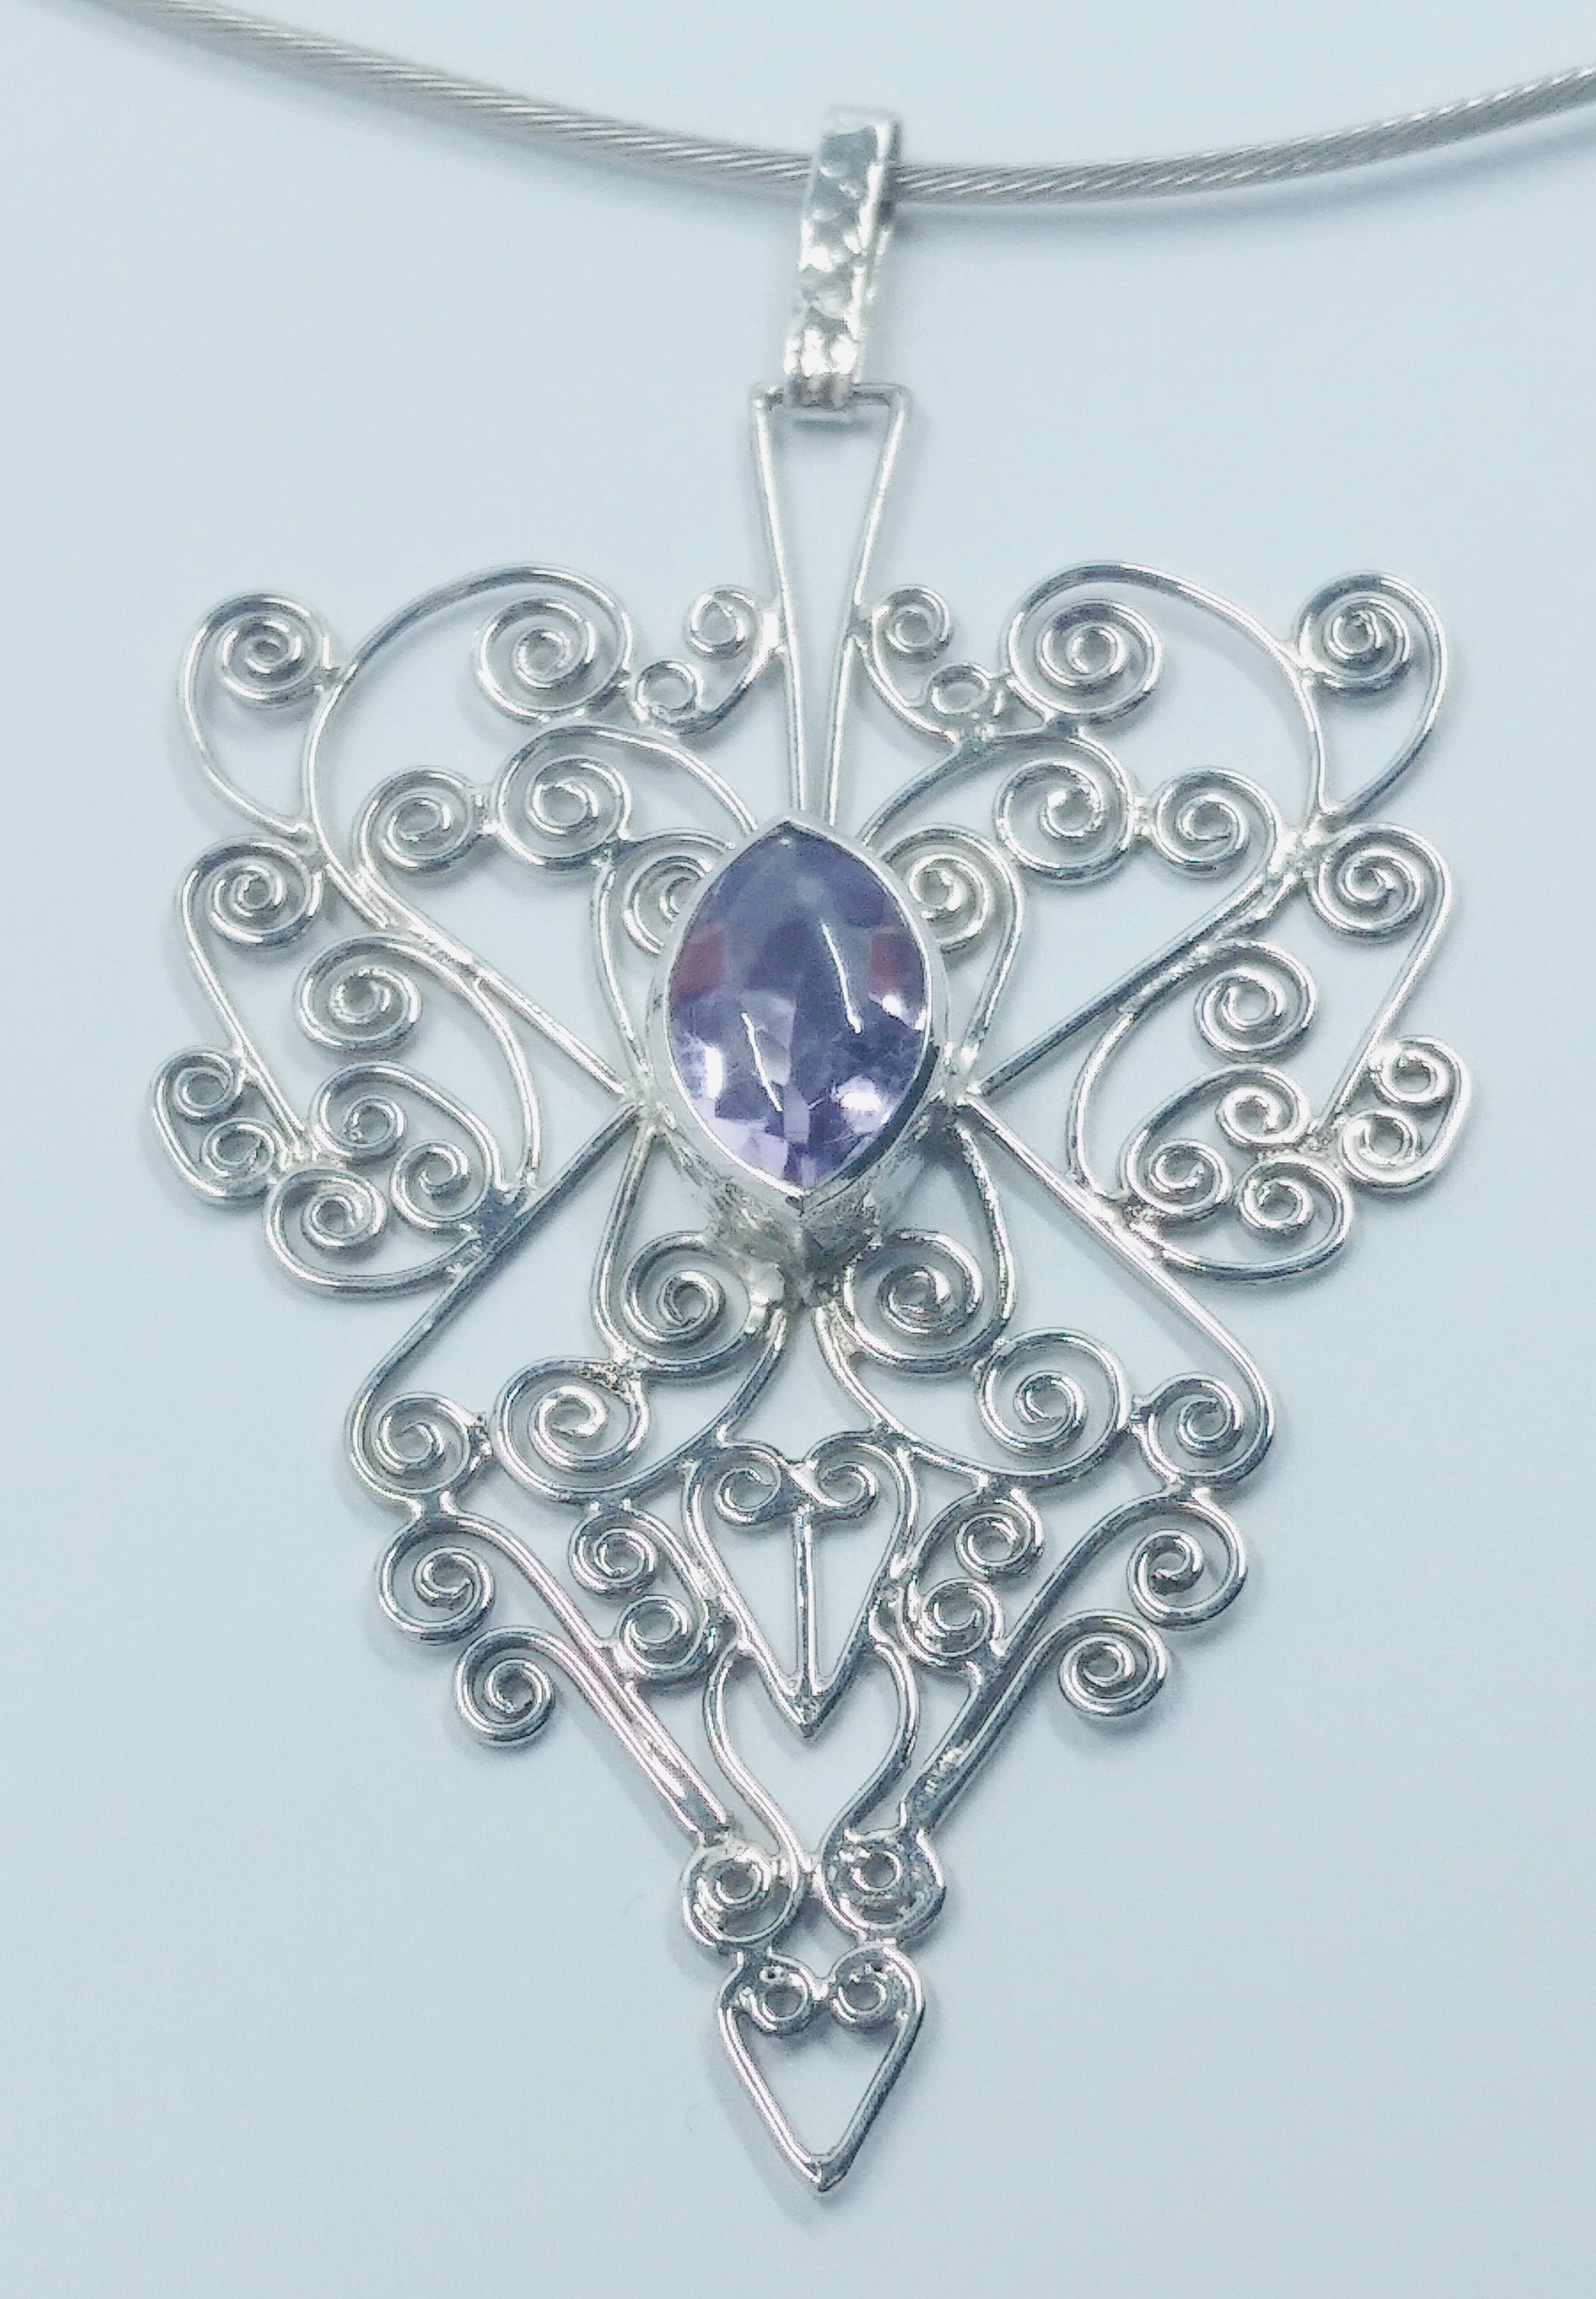 Silver wirework pendant with central marquise cut amethyst -  BUY